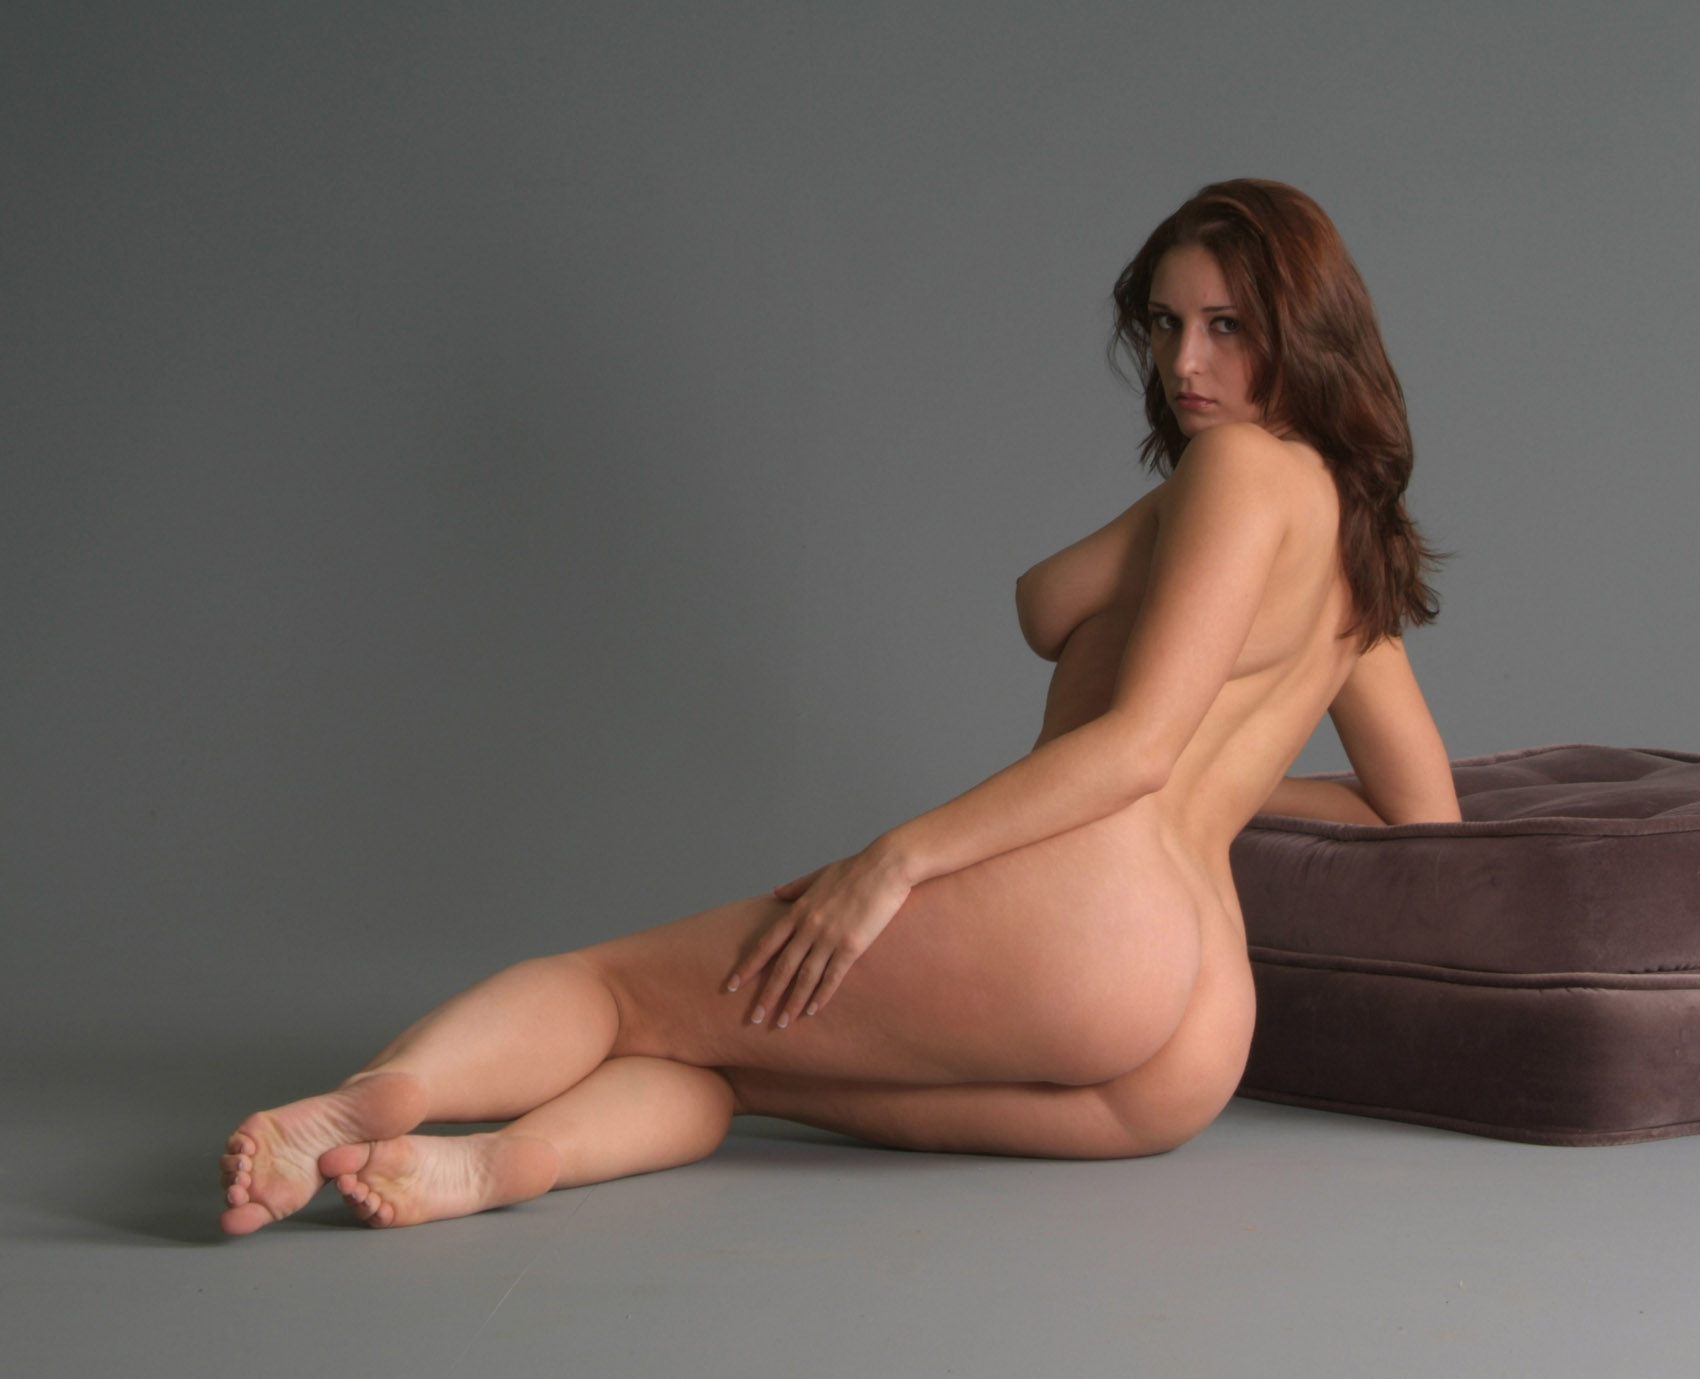 Free sci fi actresses nude porn pictures